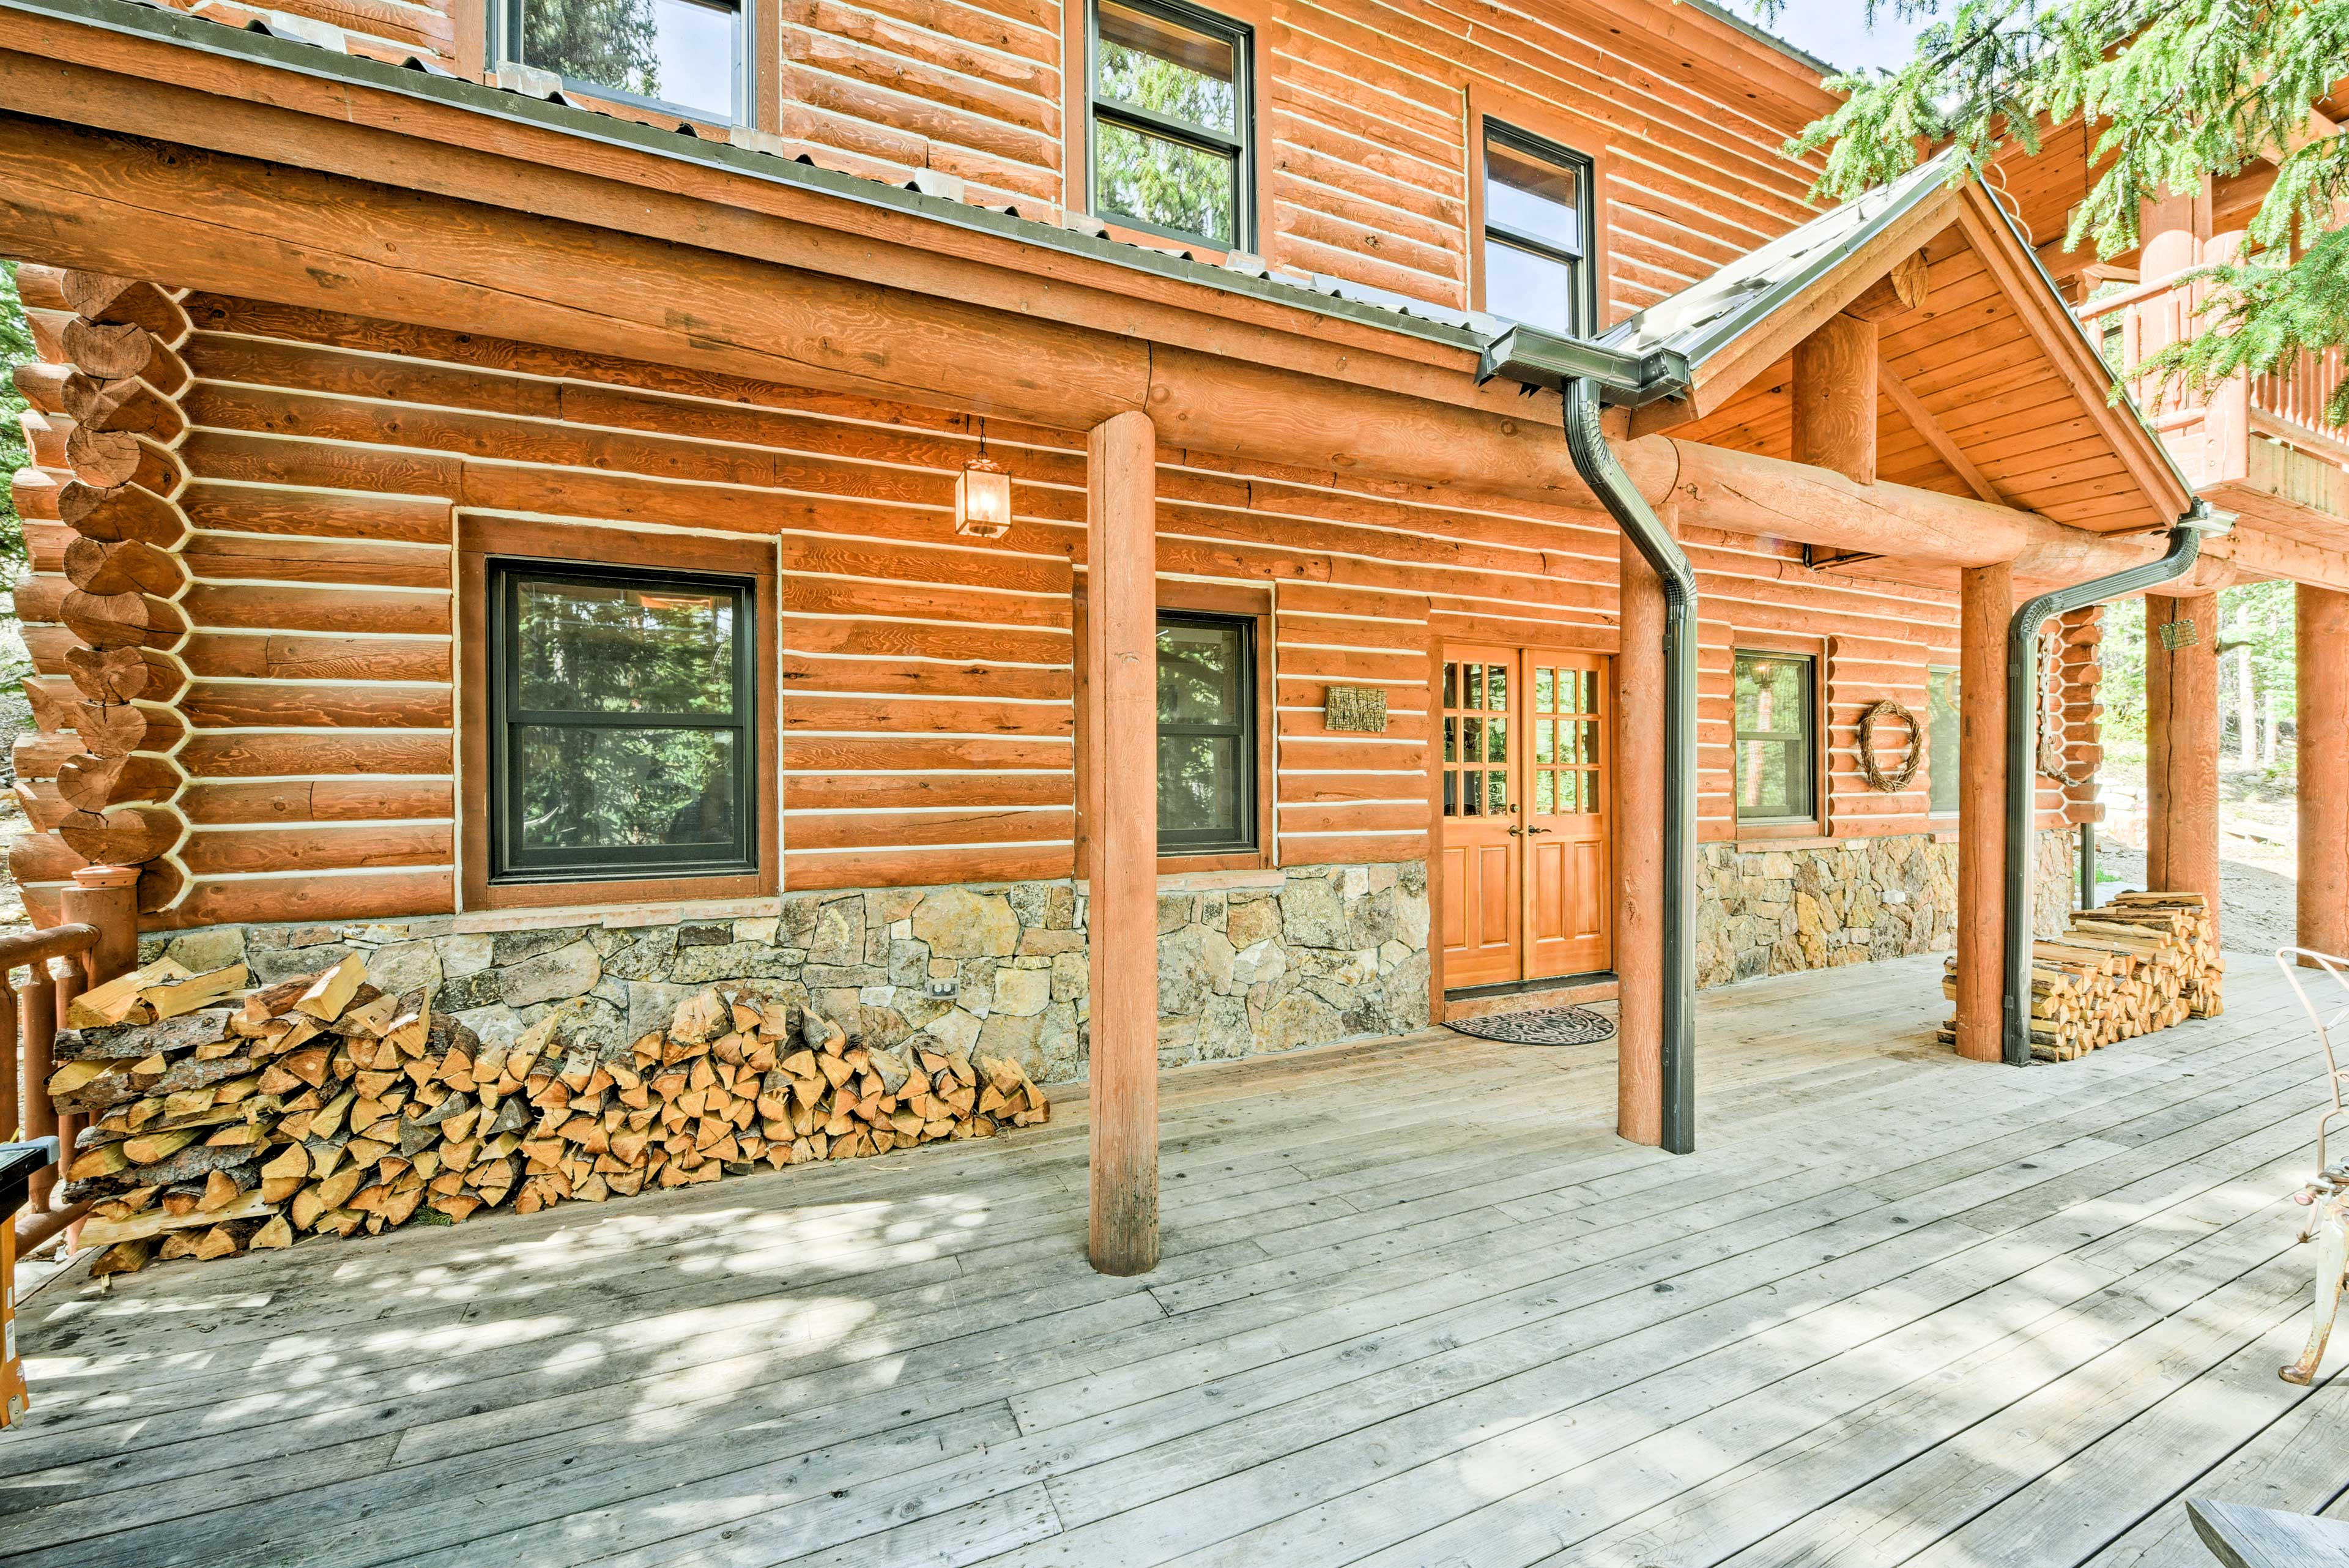 Take in the fresh mountain air on the expansive deck.